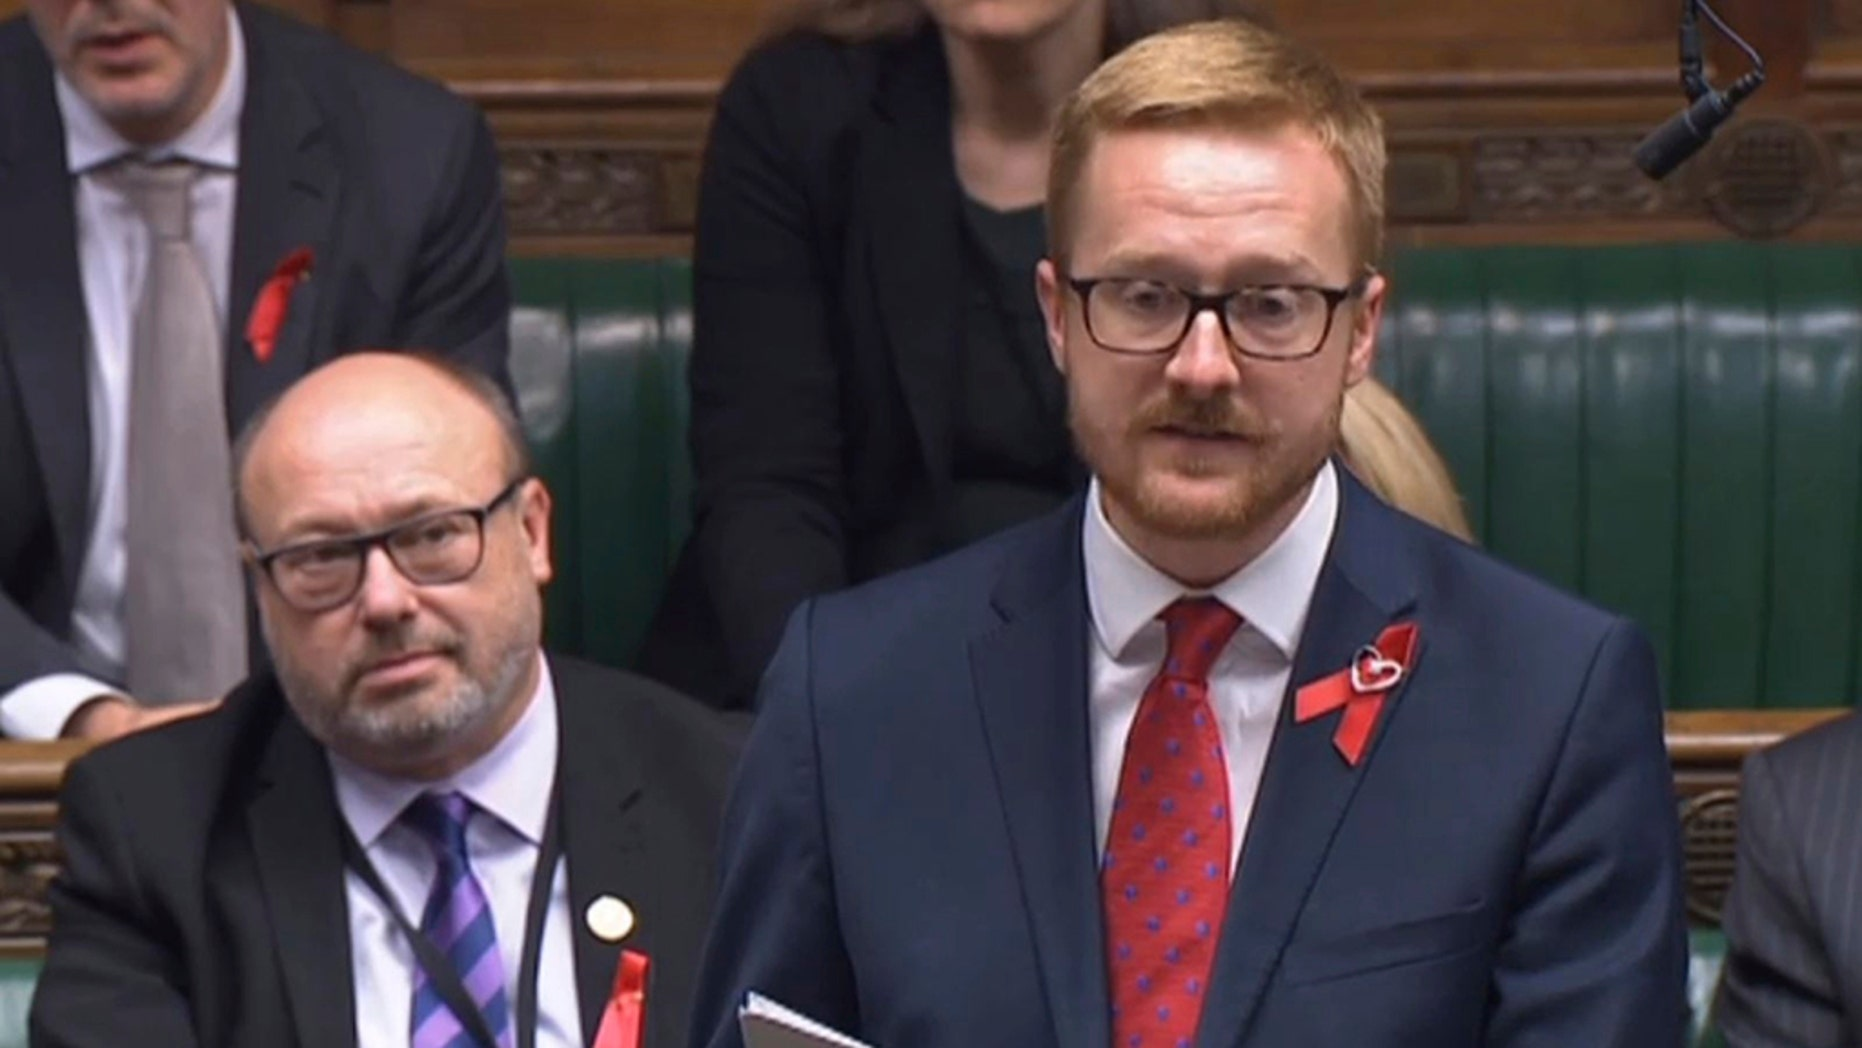 Labour MP Lloyd Russell-Moyle Reveals He Is HIV Positive